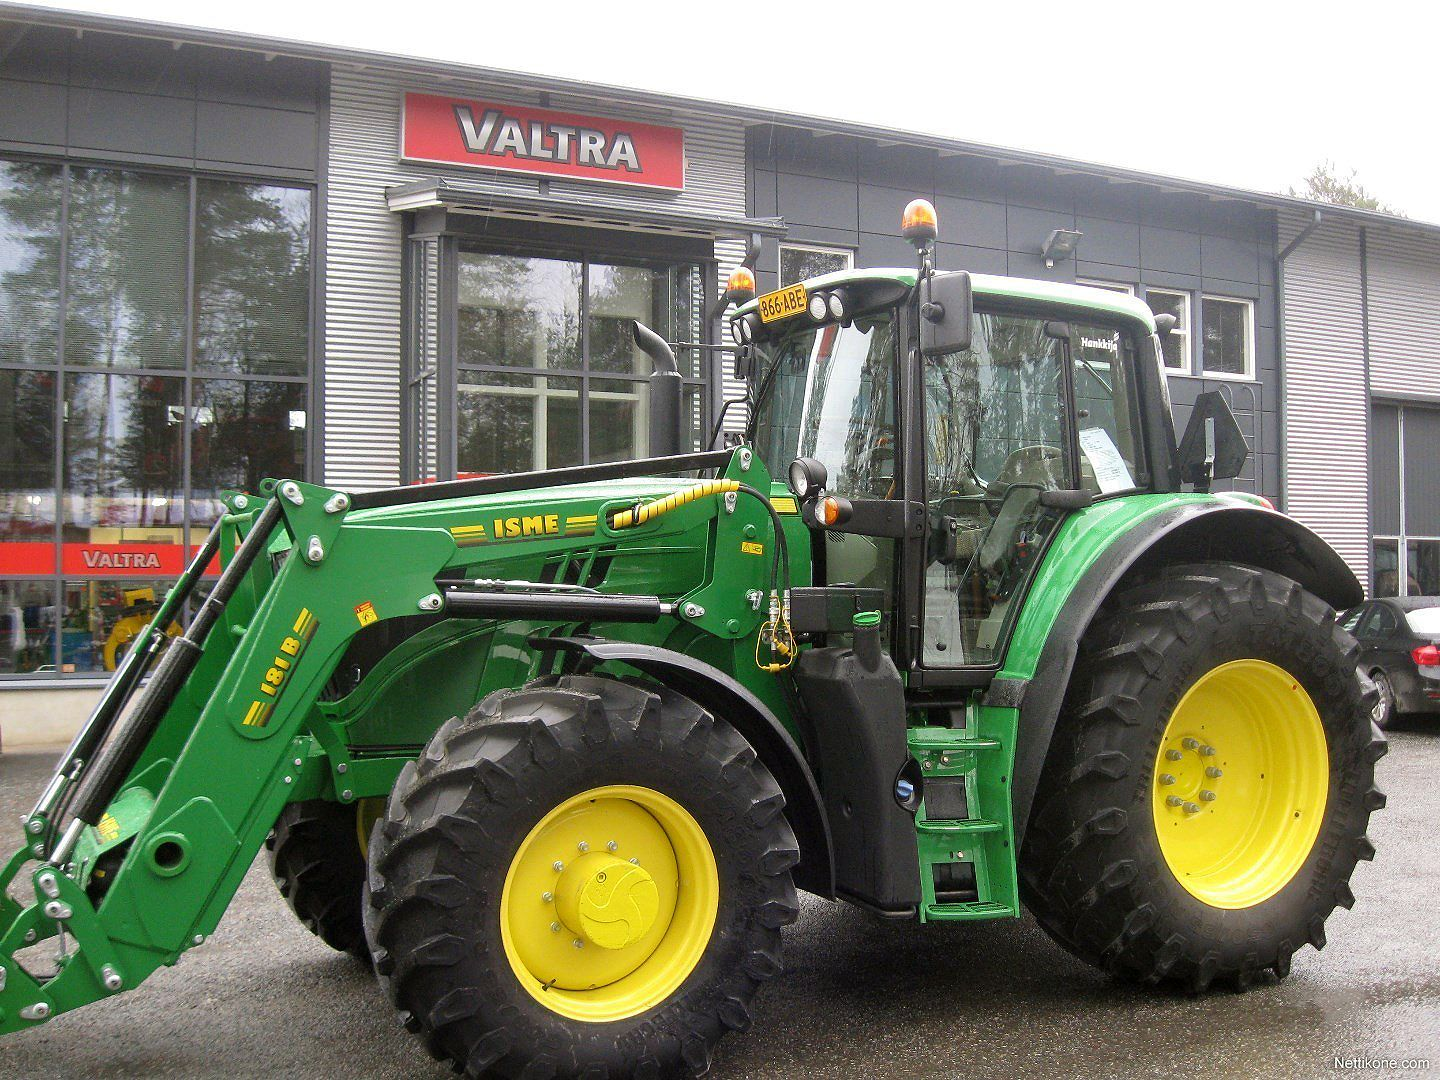 Pin on ☼ Tractor Mania